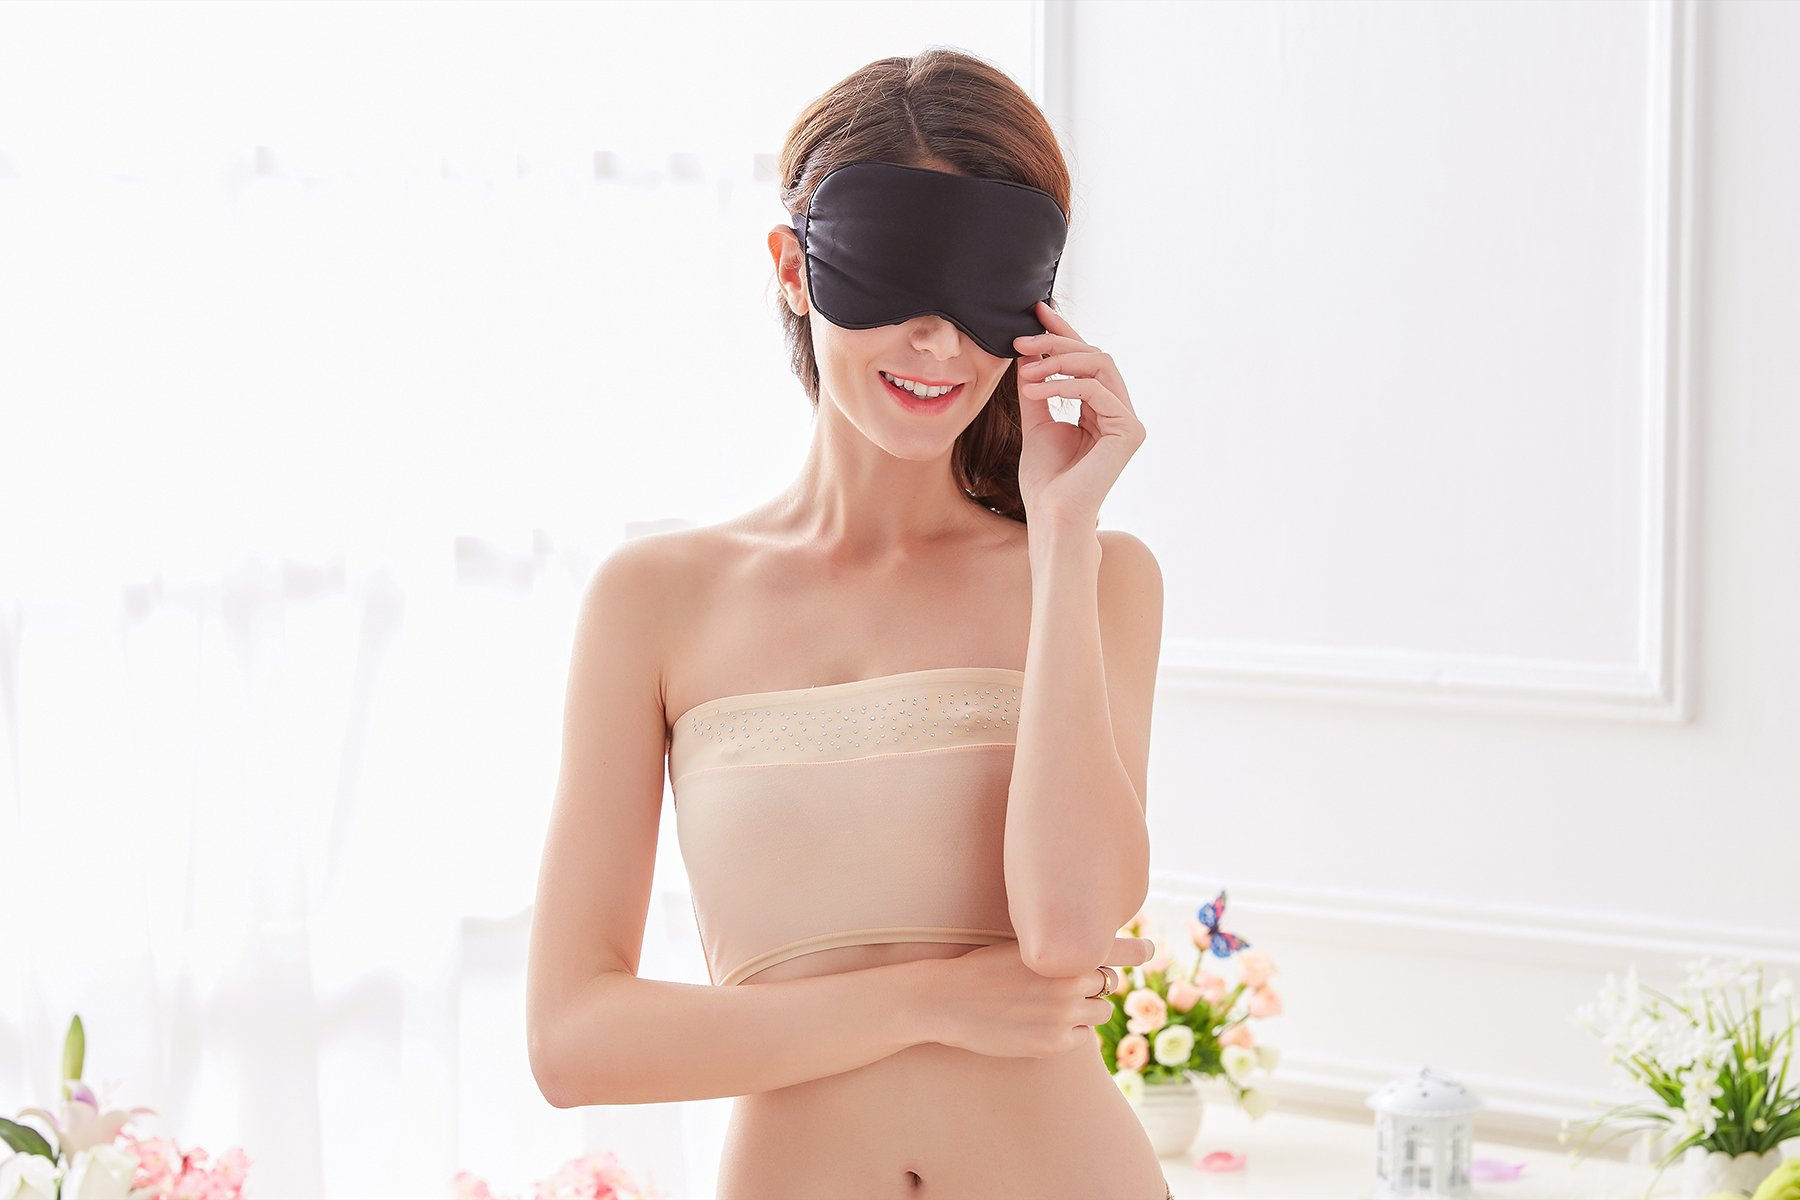 Natural Silk Sleep Mask & Blindfold - Lifetime Guarantee - Super Smooth Eye Mask for Men & Women & Kids - Your Best Travel Sleeping Helper - Include FREE Ear Plugs by Babo Care (Image #6)